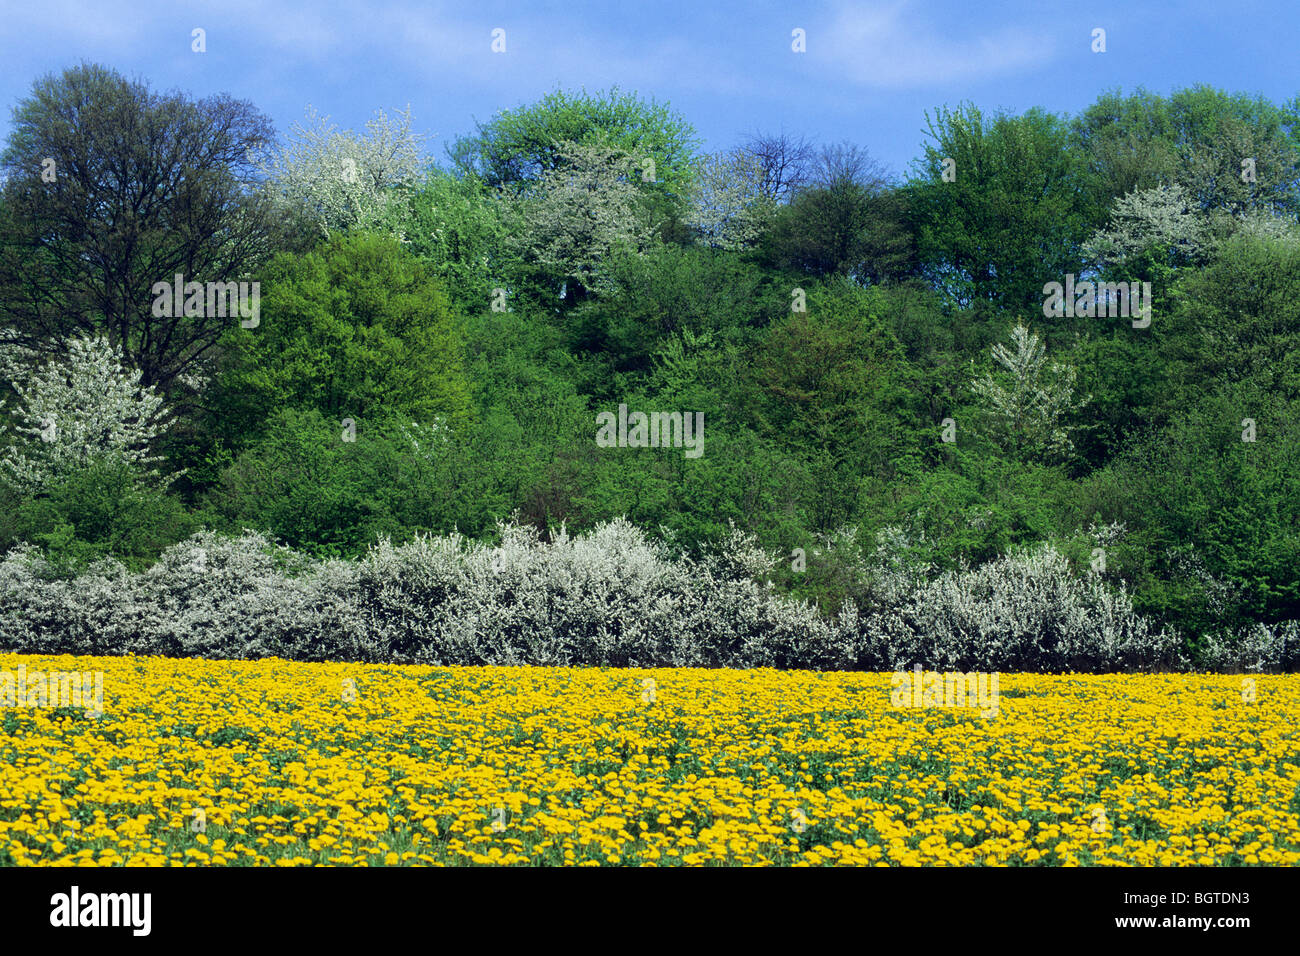 Flowering Hedge and Dandelion filled meadow in May (Taraxacum officinale) Stock Photo